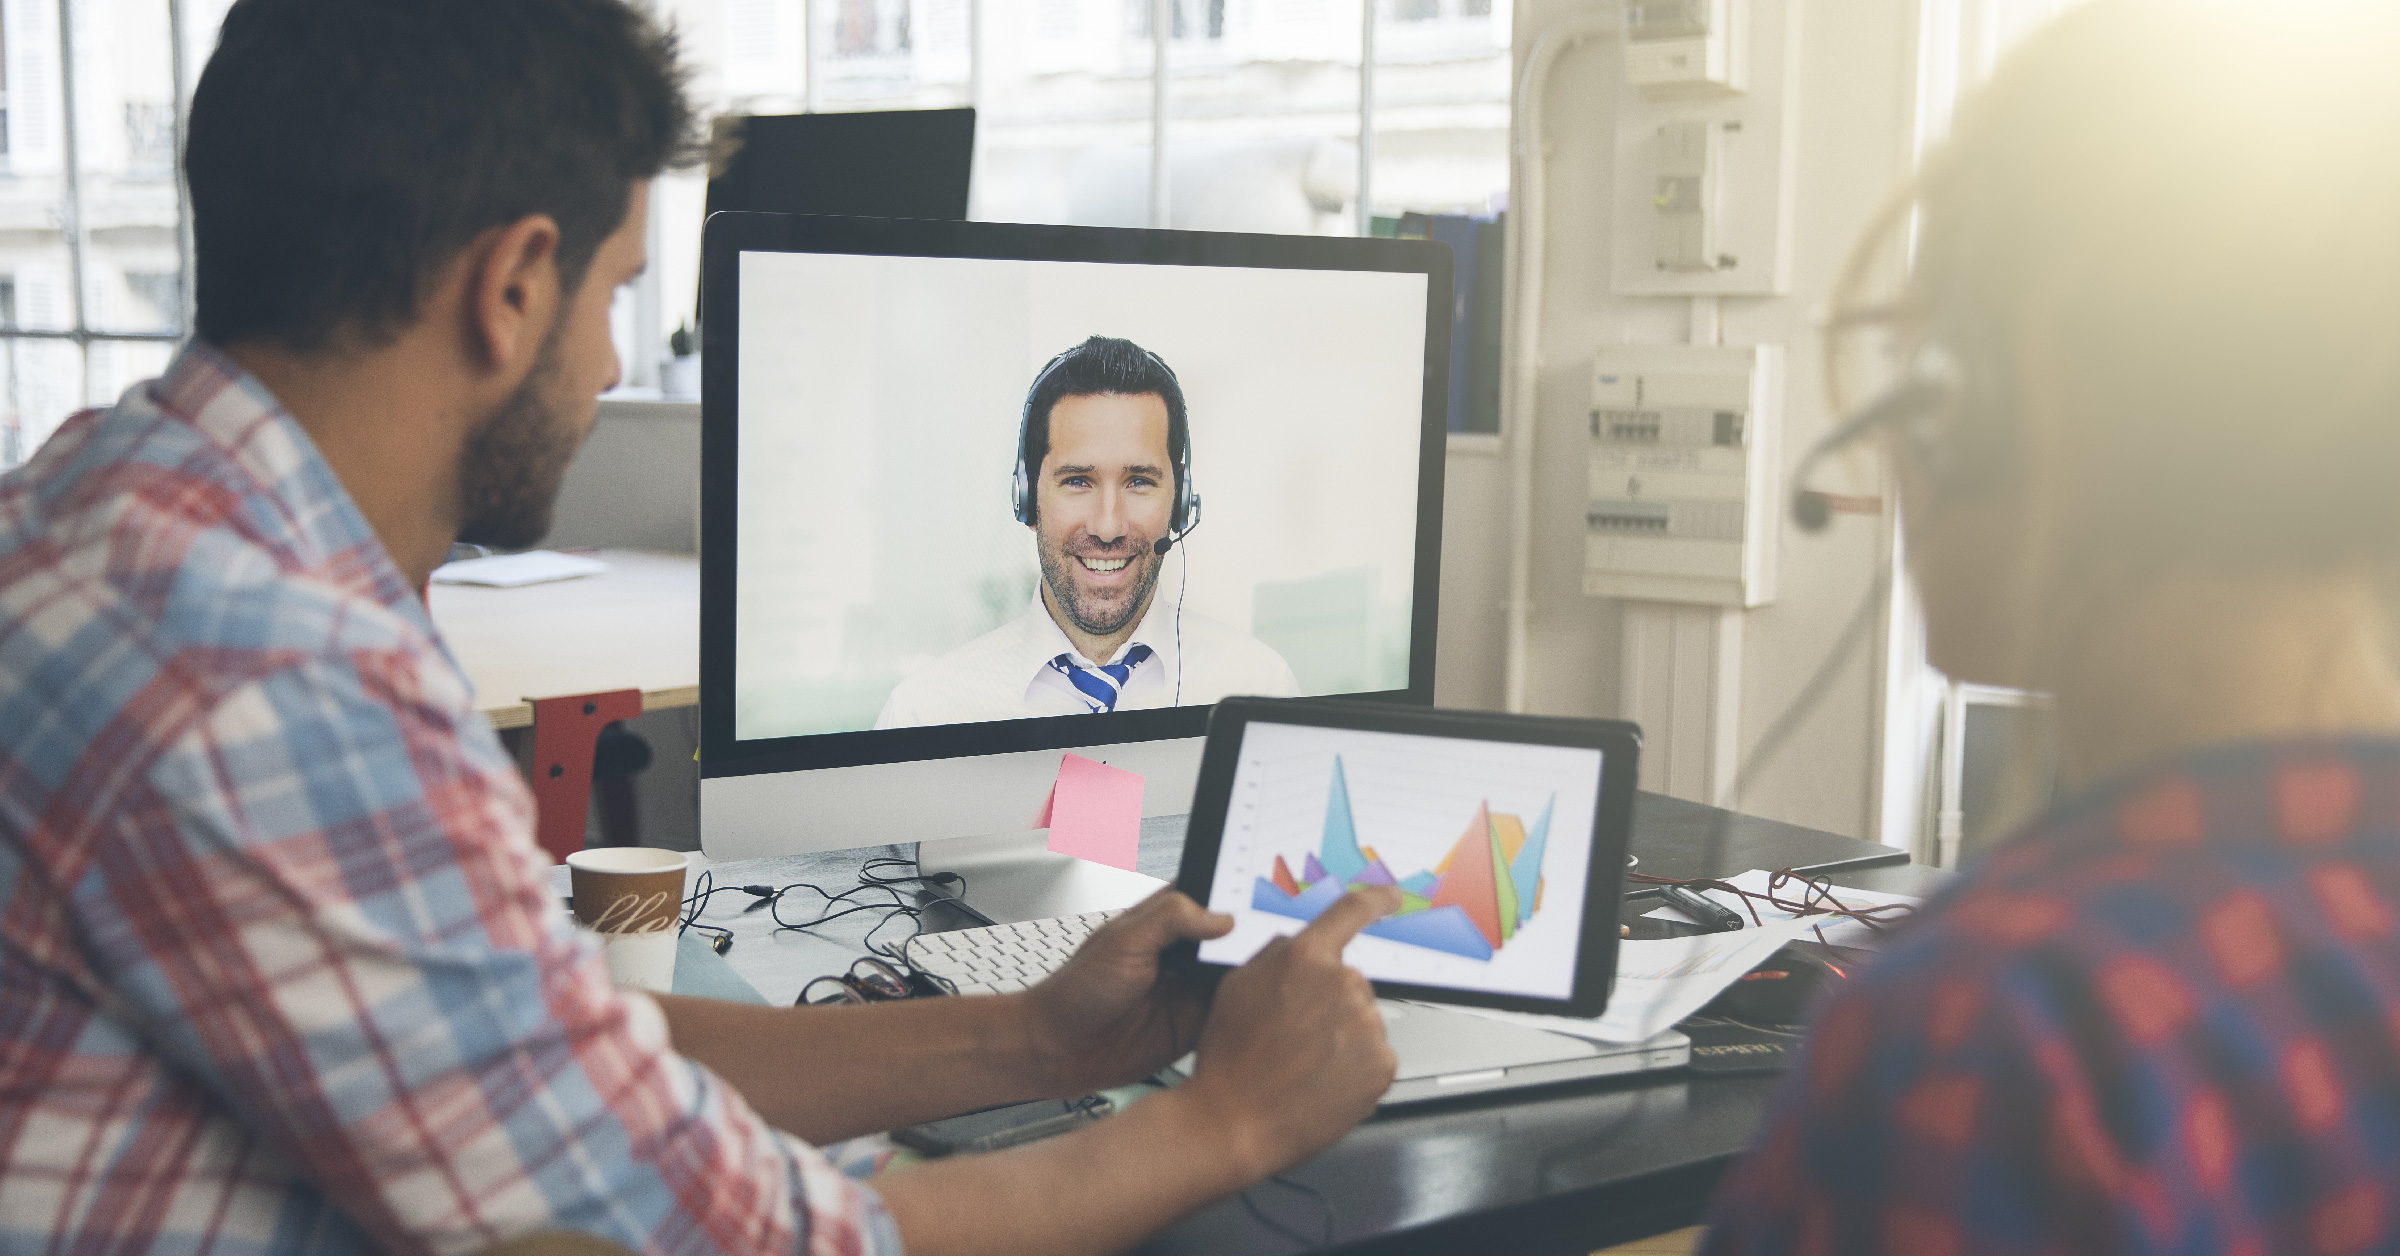 Security, Transparency and Open Standards: Our Commitment to Enterprise-Grade Video Conferencing